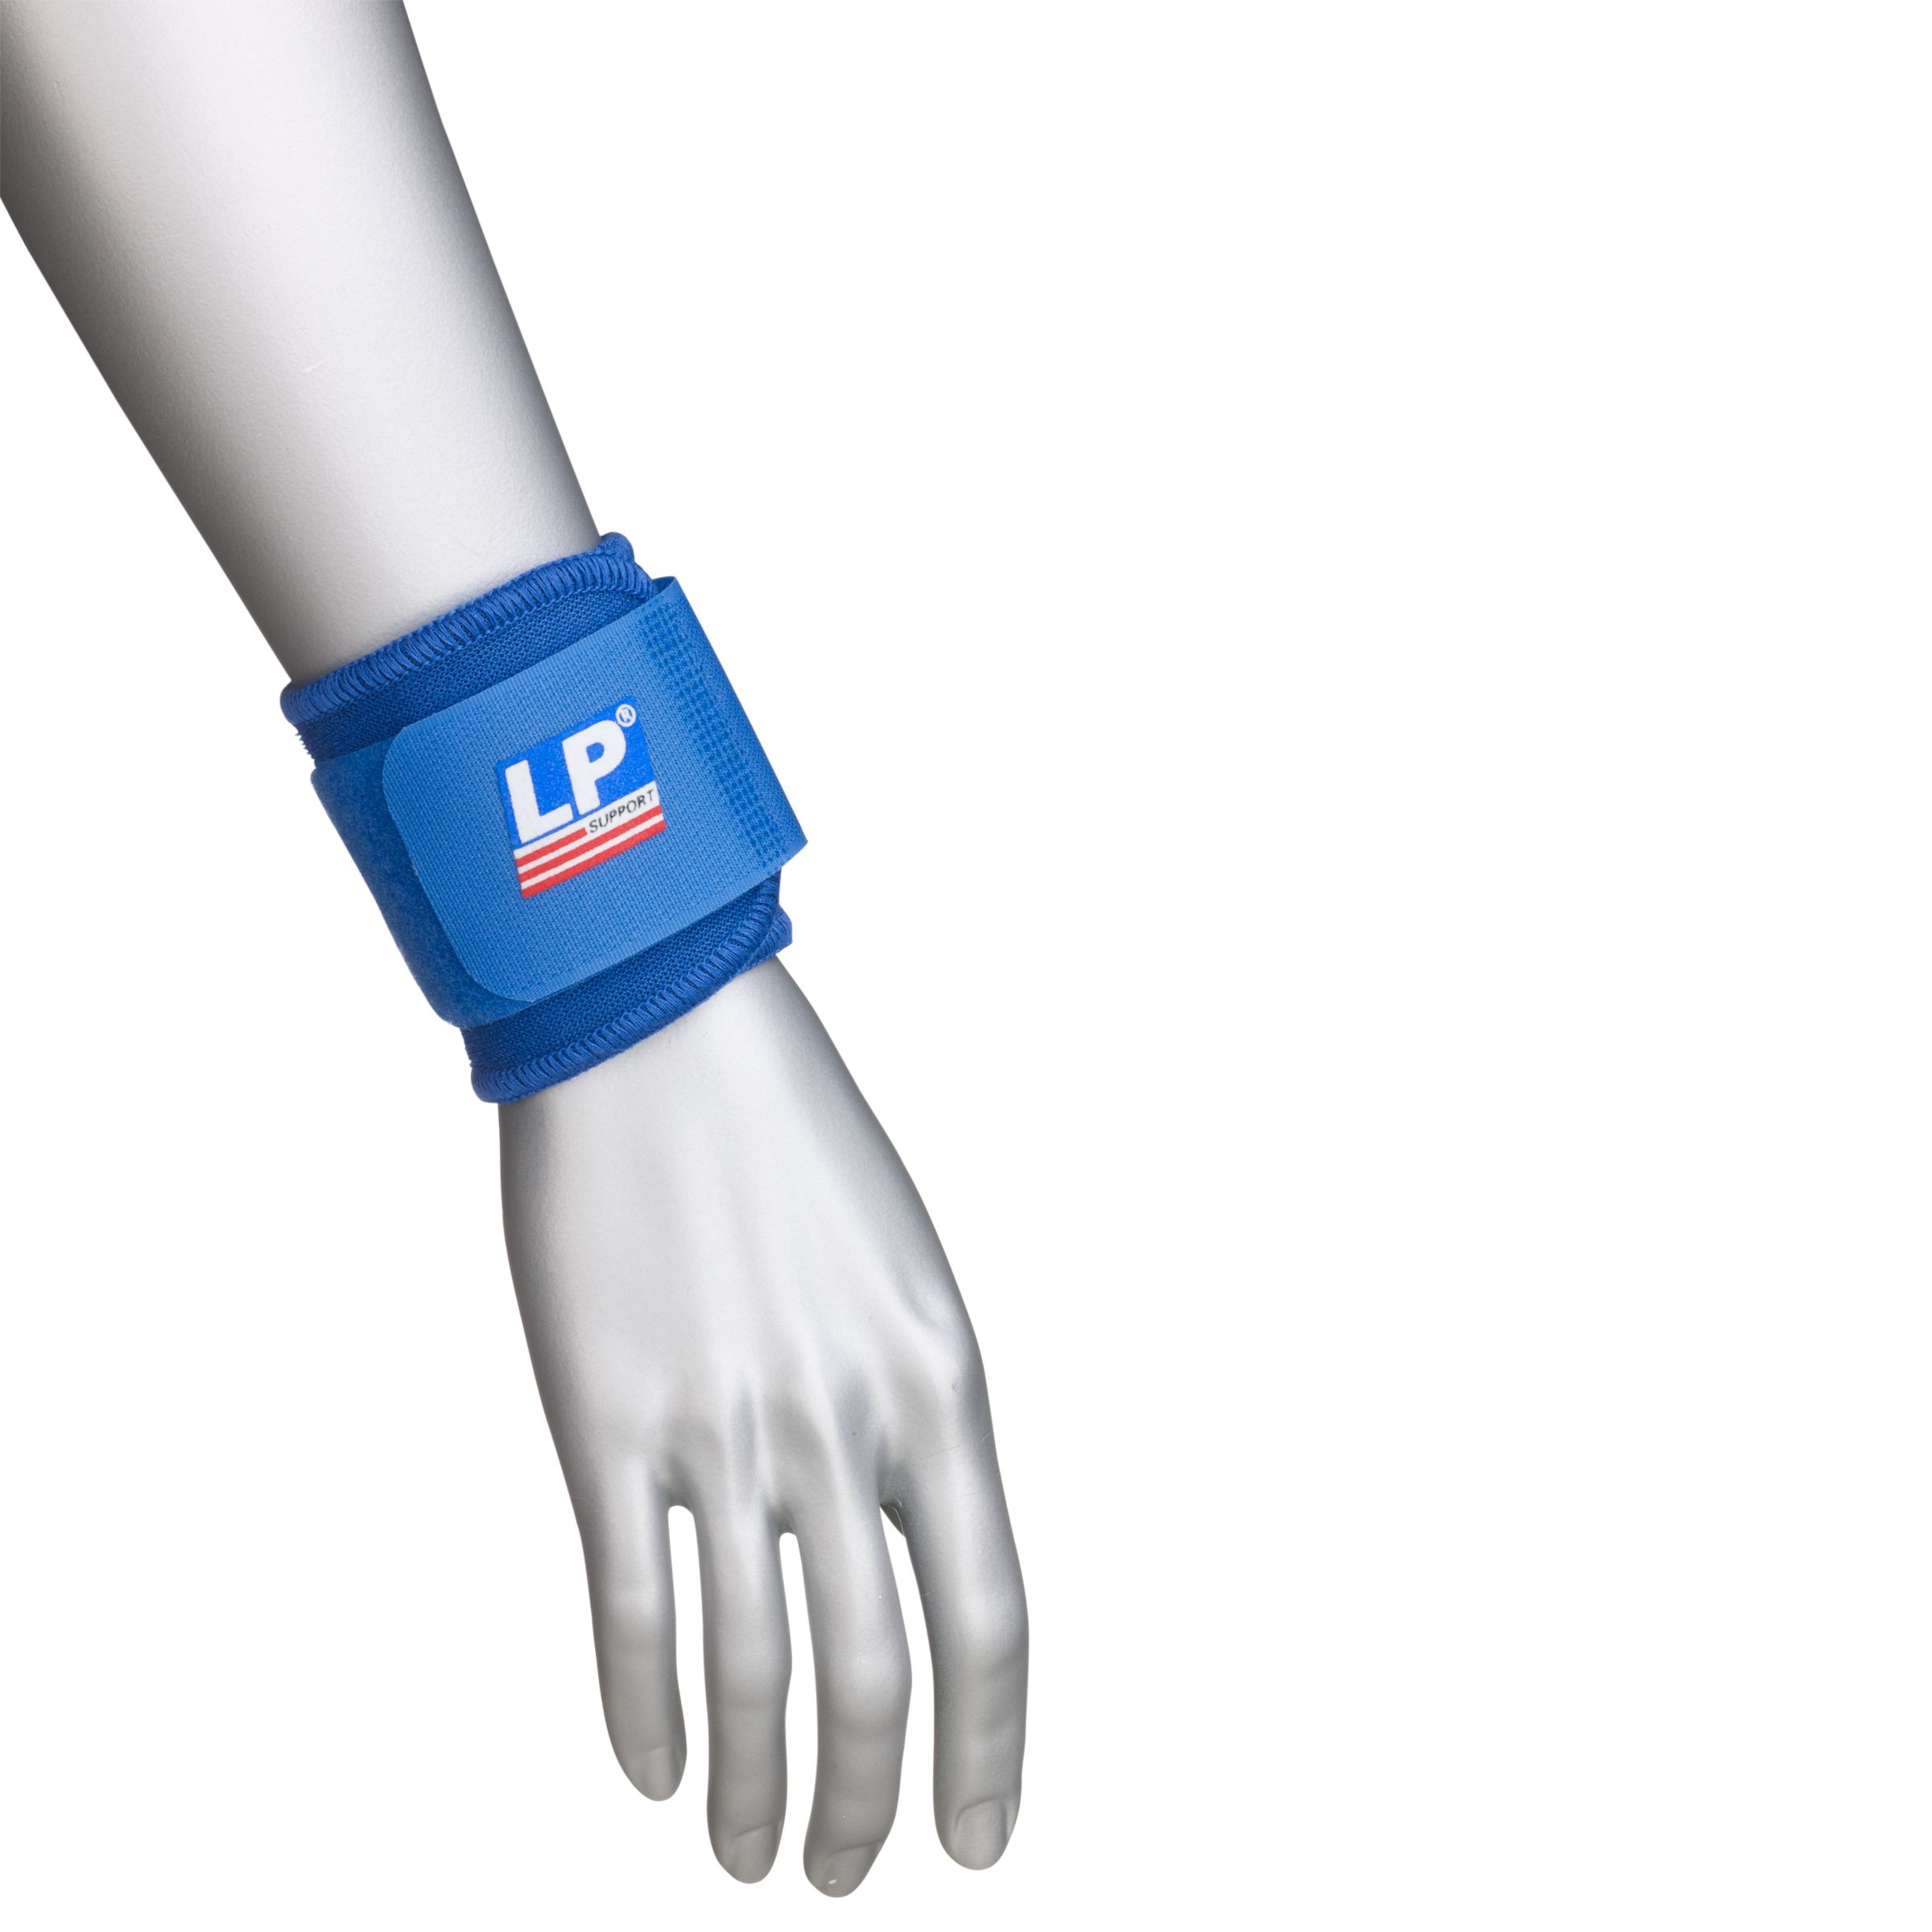 Lp Supports LP Supports Neoprene Wrist Support, One Size